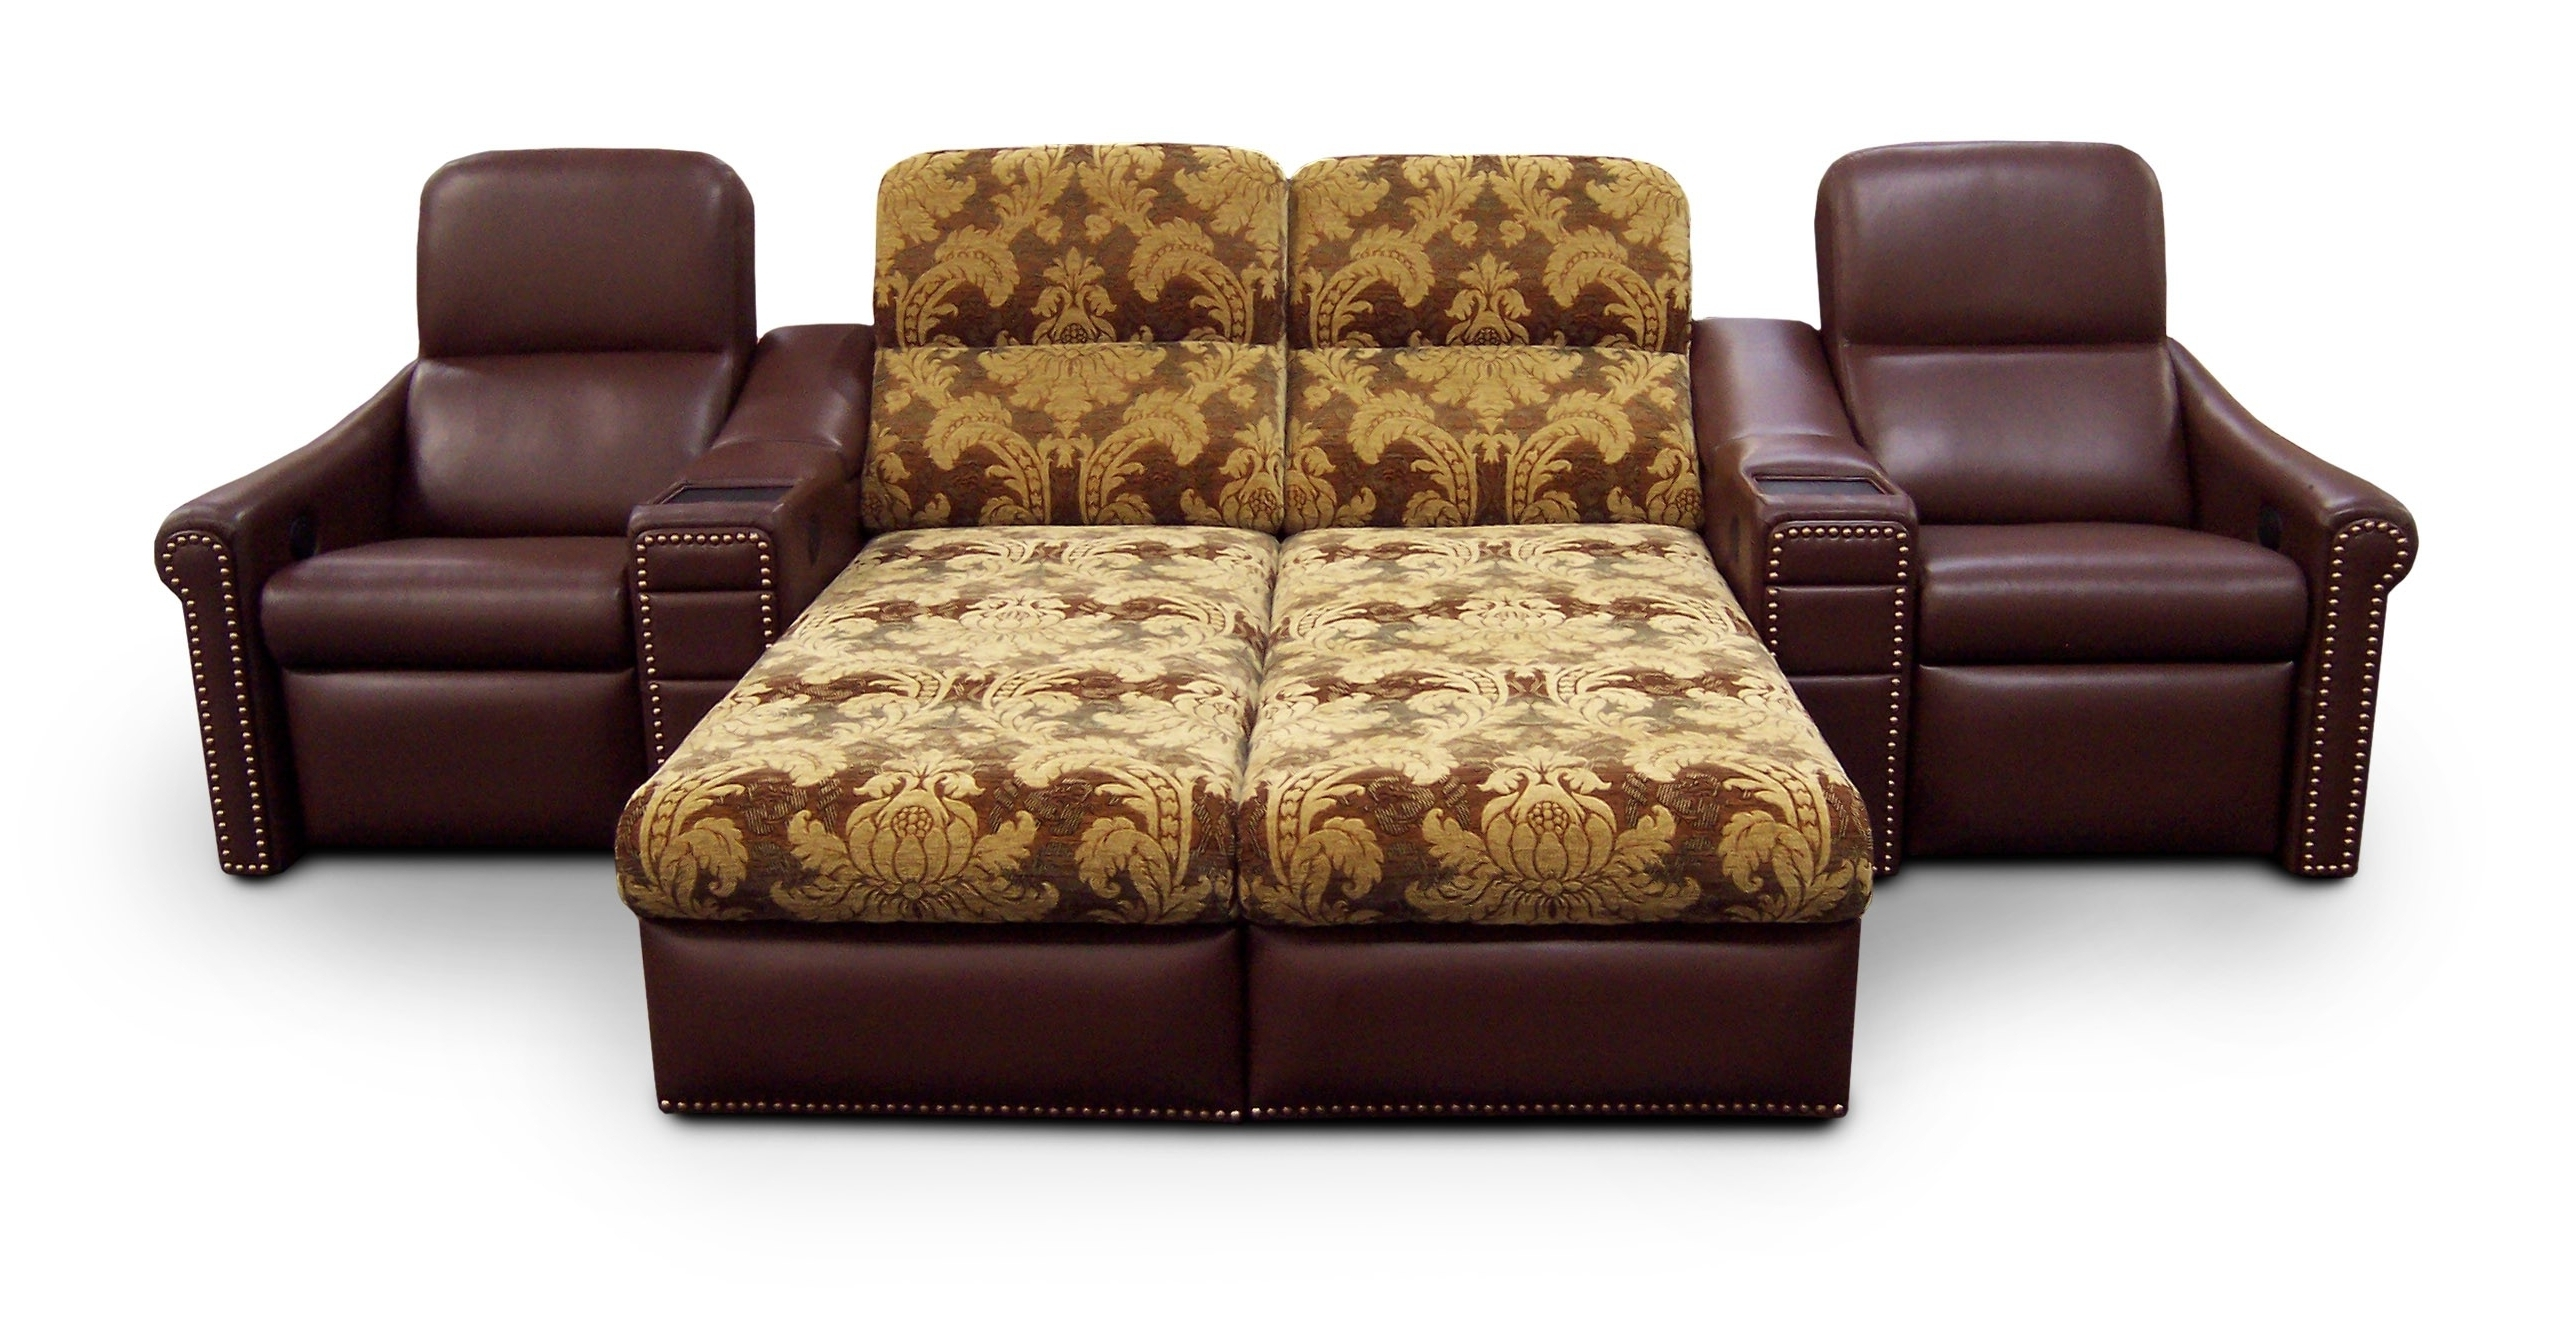 Latest Double Chaise Lounge Sofas With Double Chaise Lounge Sofa Decorators Systems – Surripui (View 9 of 15)